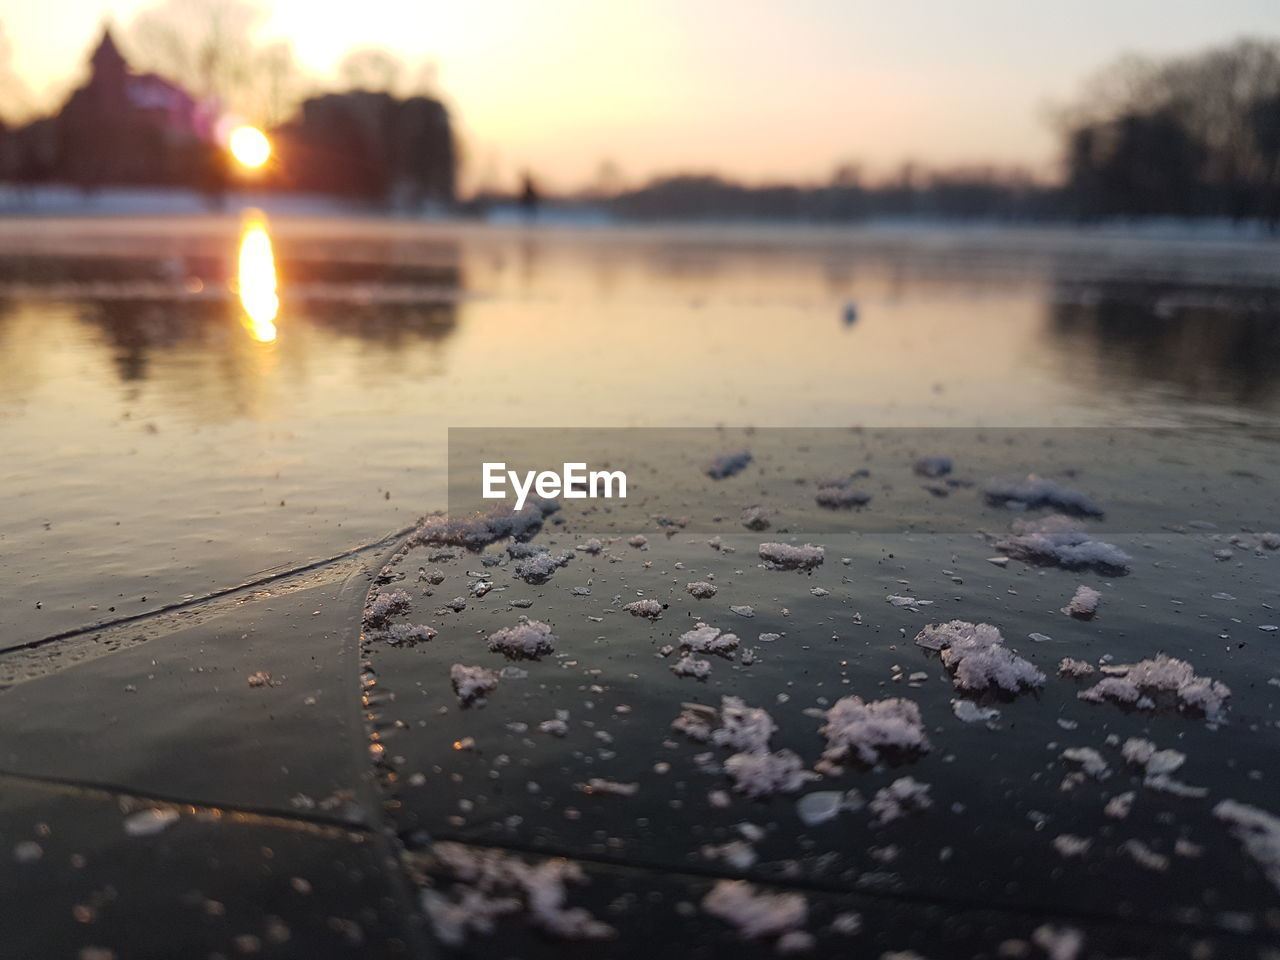 water, sunset, reflection, nature, wet, beauty in nature, no people, tranquility, tranquil scene, outdoors, frozen, sun, drop, lake, scenics, sky, winter, close-up, day